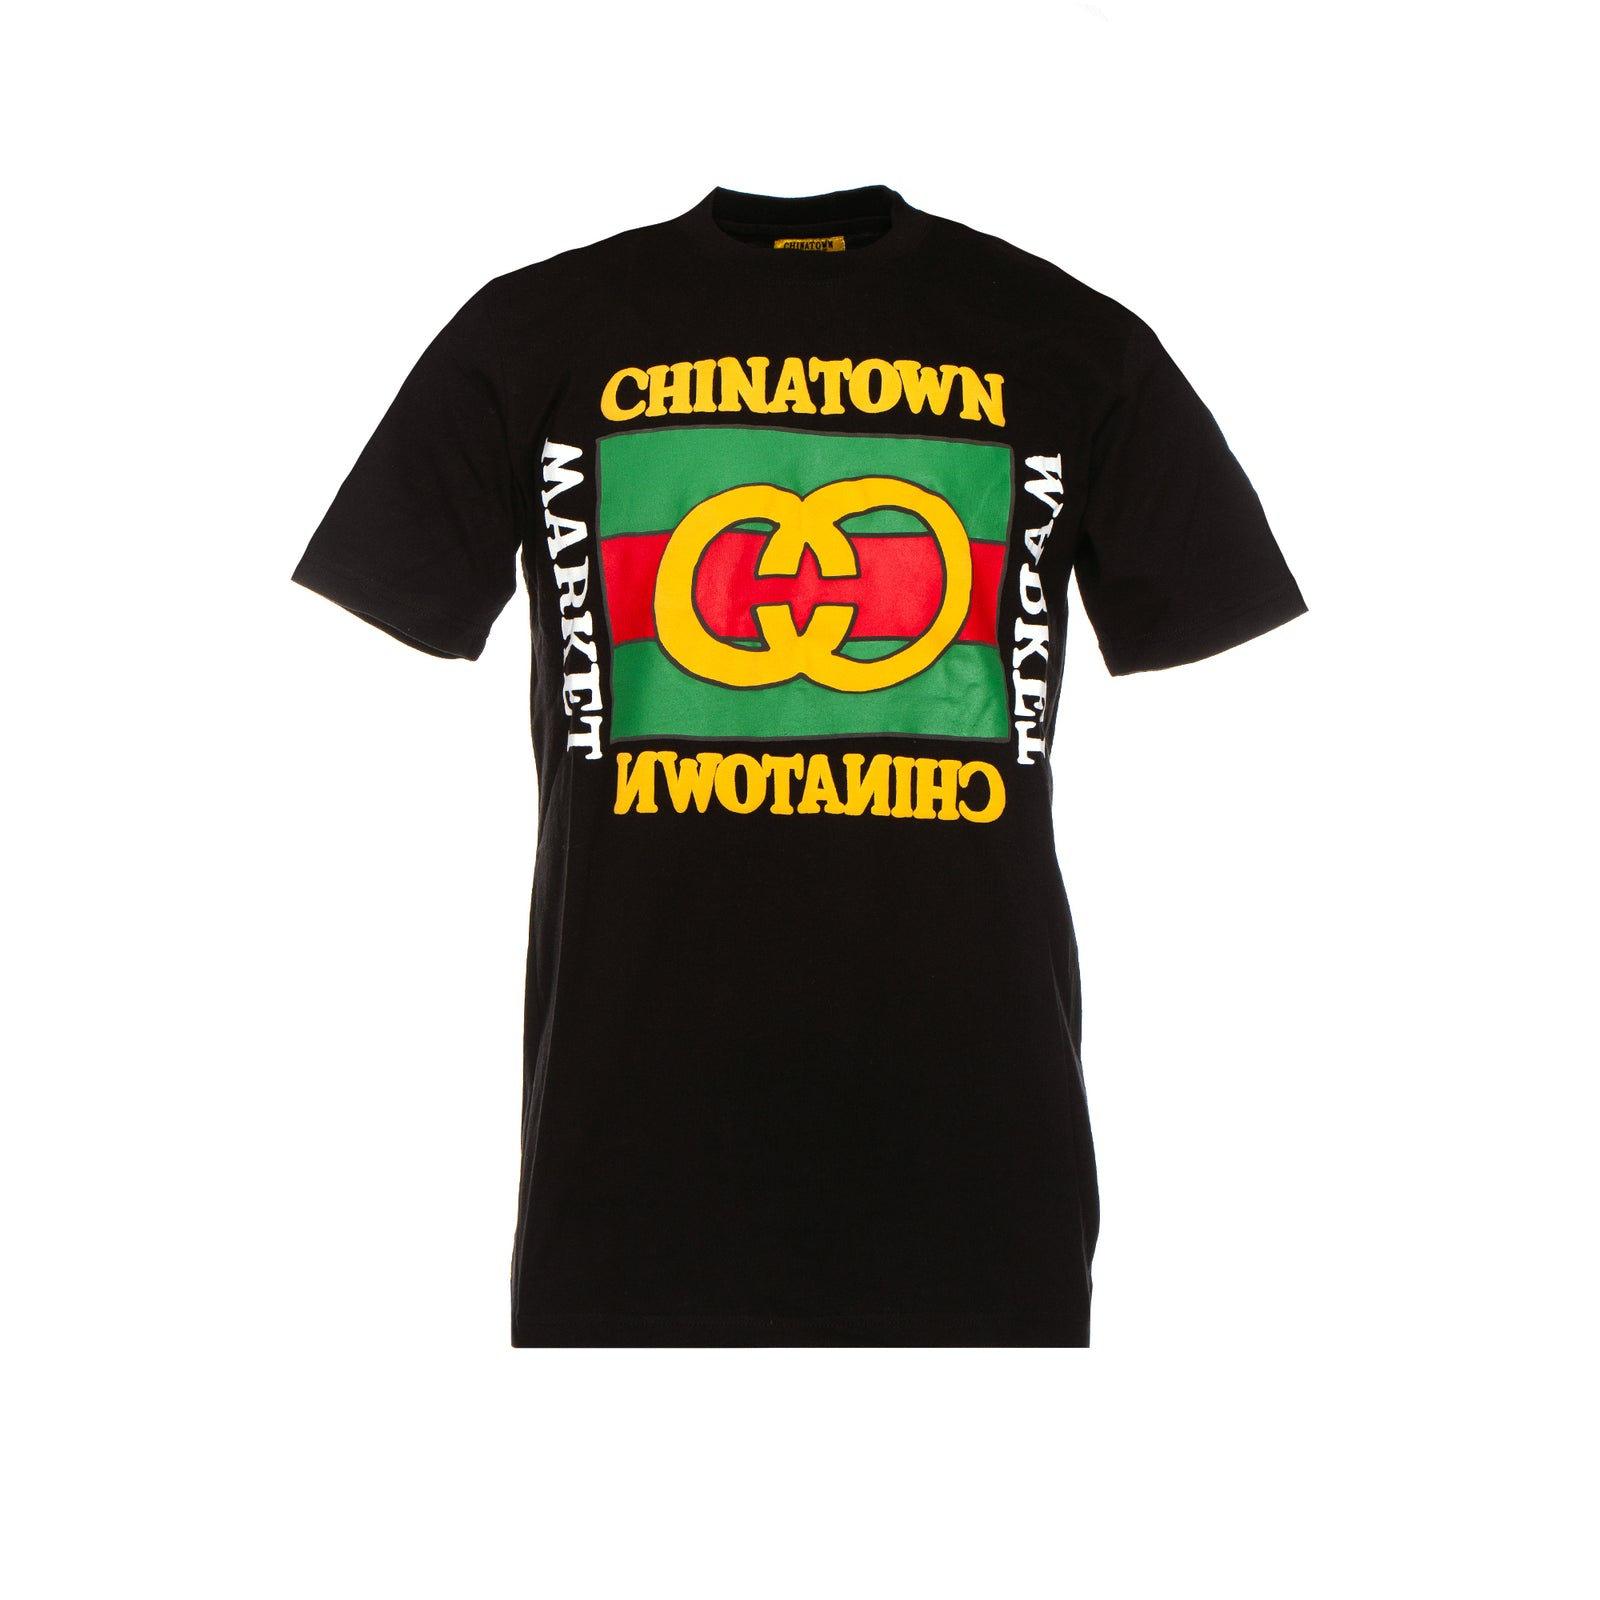 Chinatown Market Puffy Tee Black